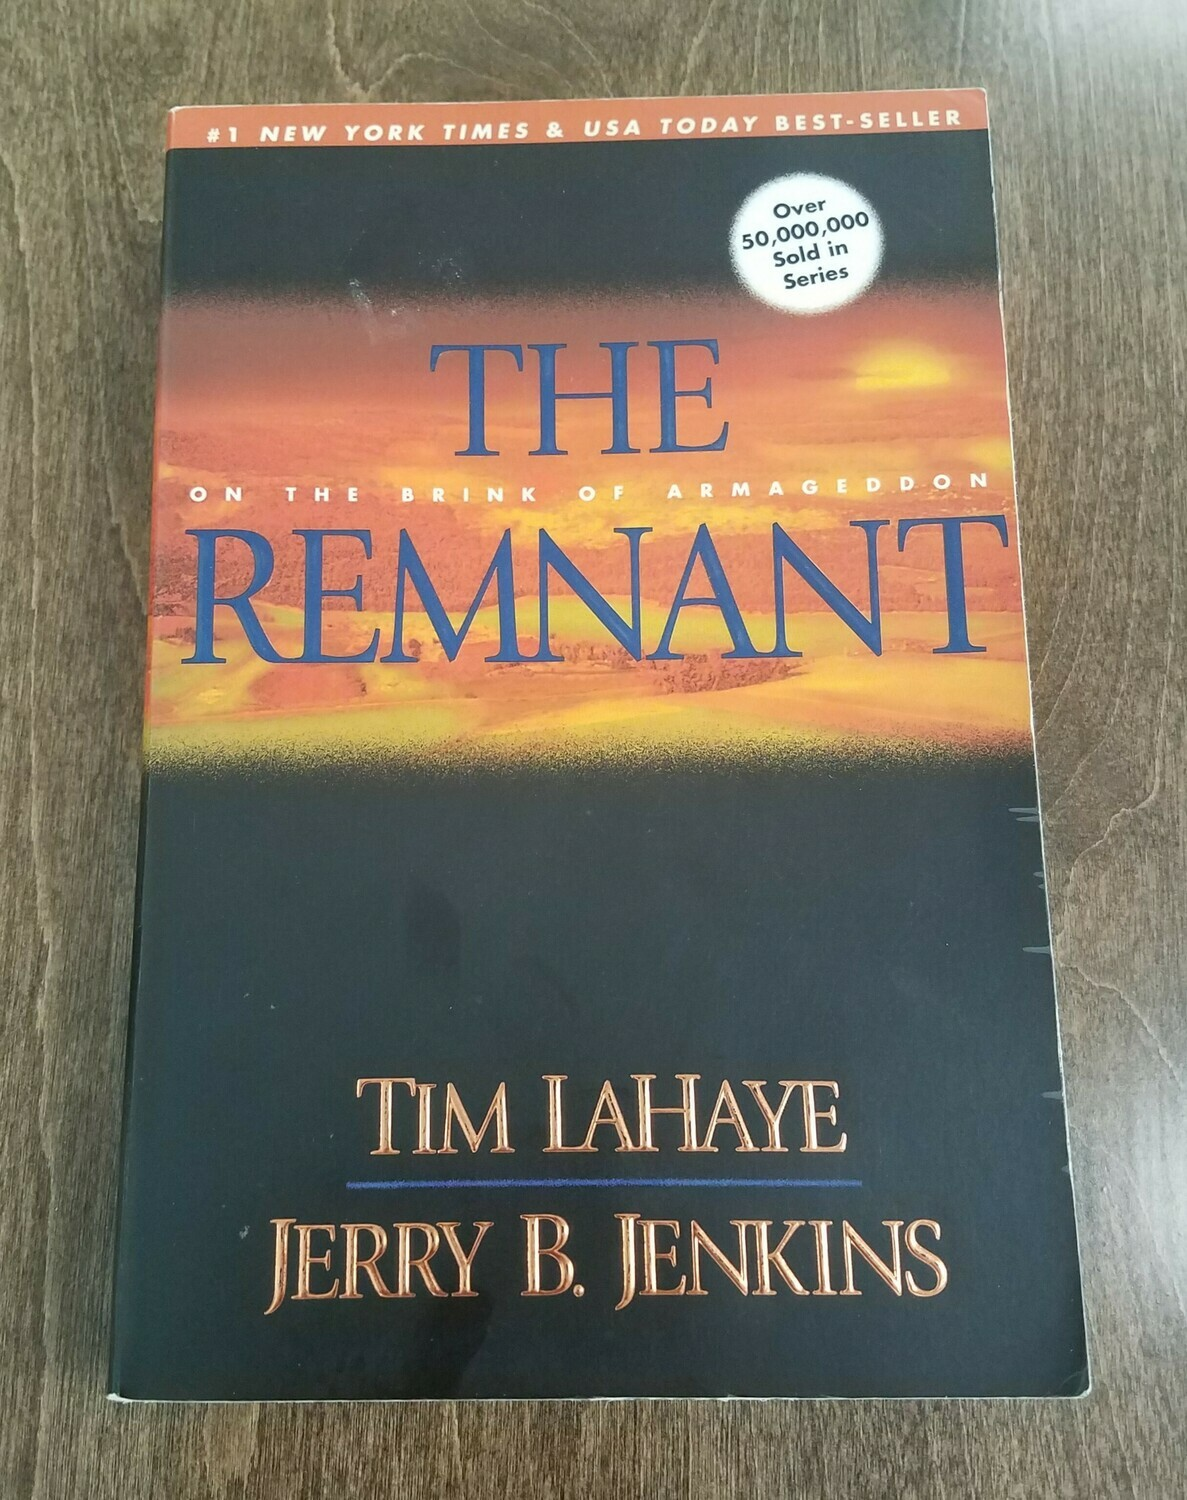 The Remnant: On the Brink of Armageddon by Tim LaHaye and Jerry B. Jenkins - Paperback